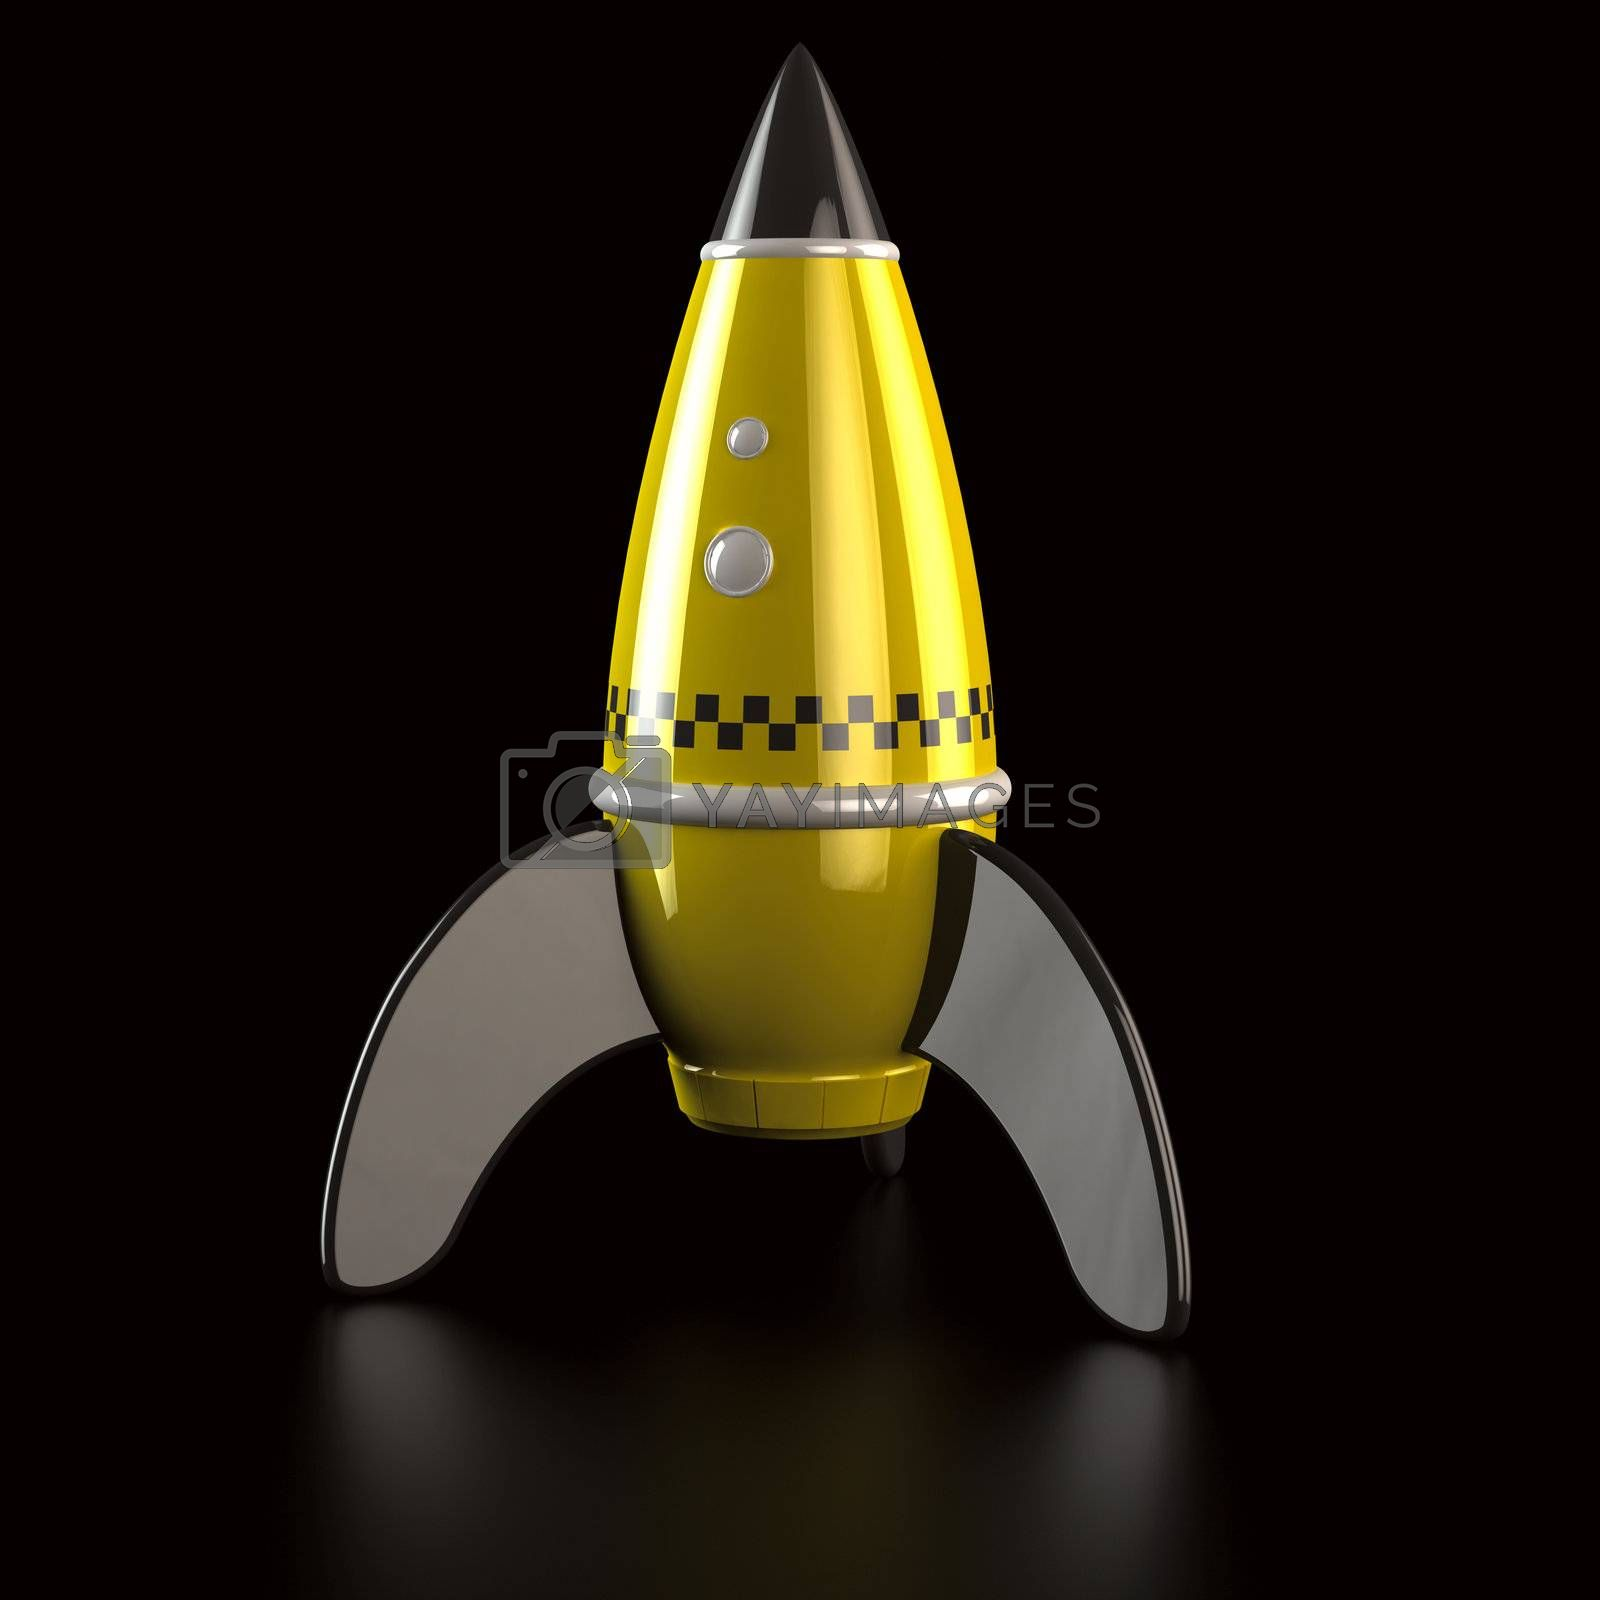 Yellow rocket taxi on the black background, 3d computer graphic